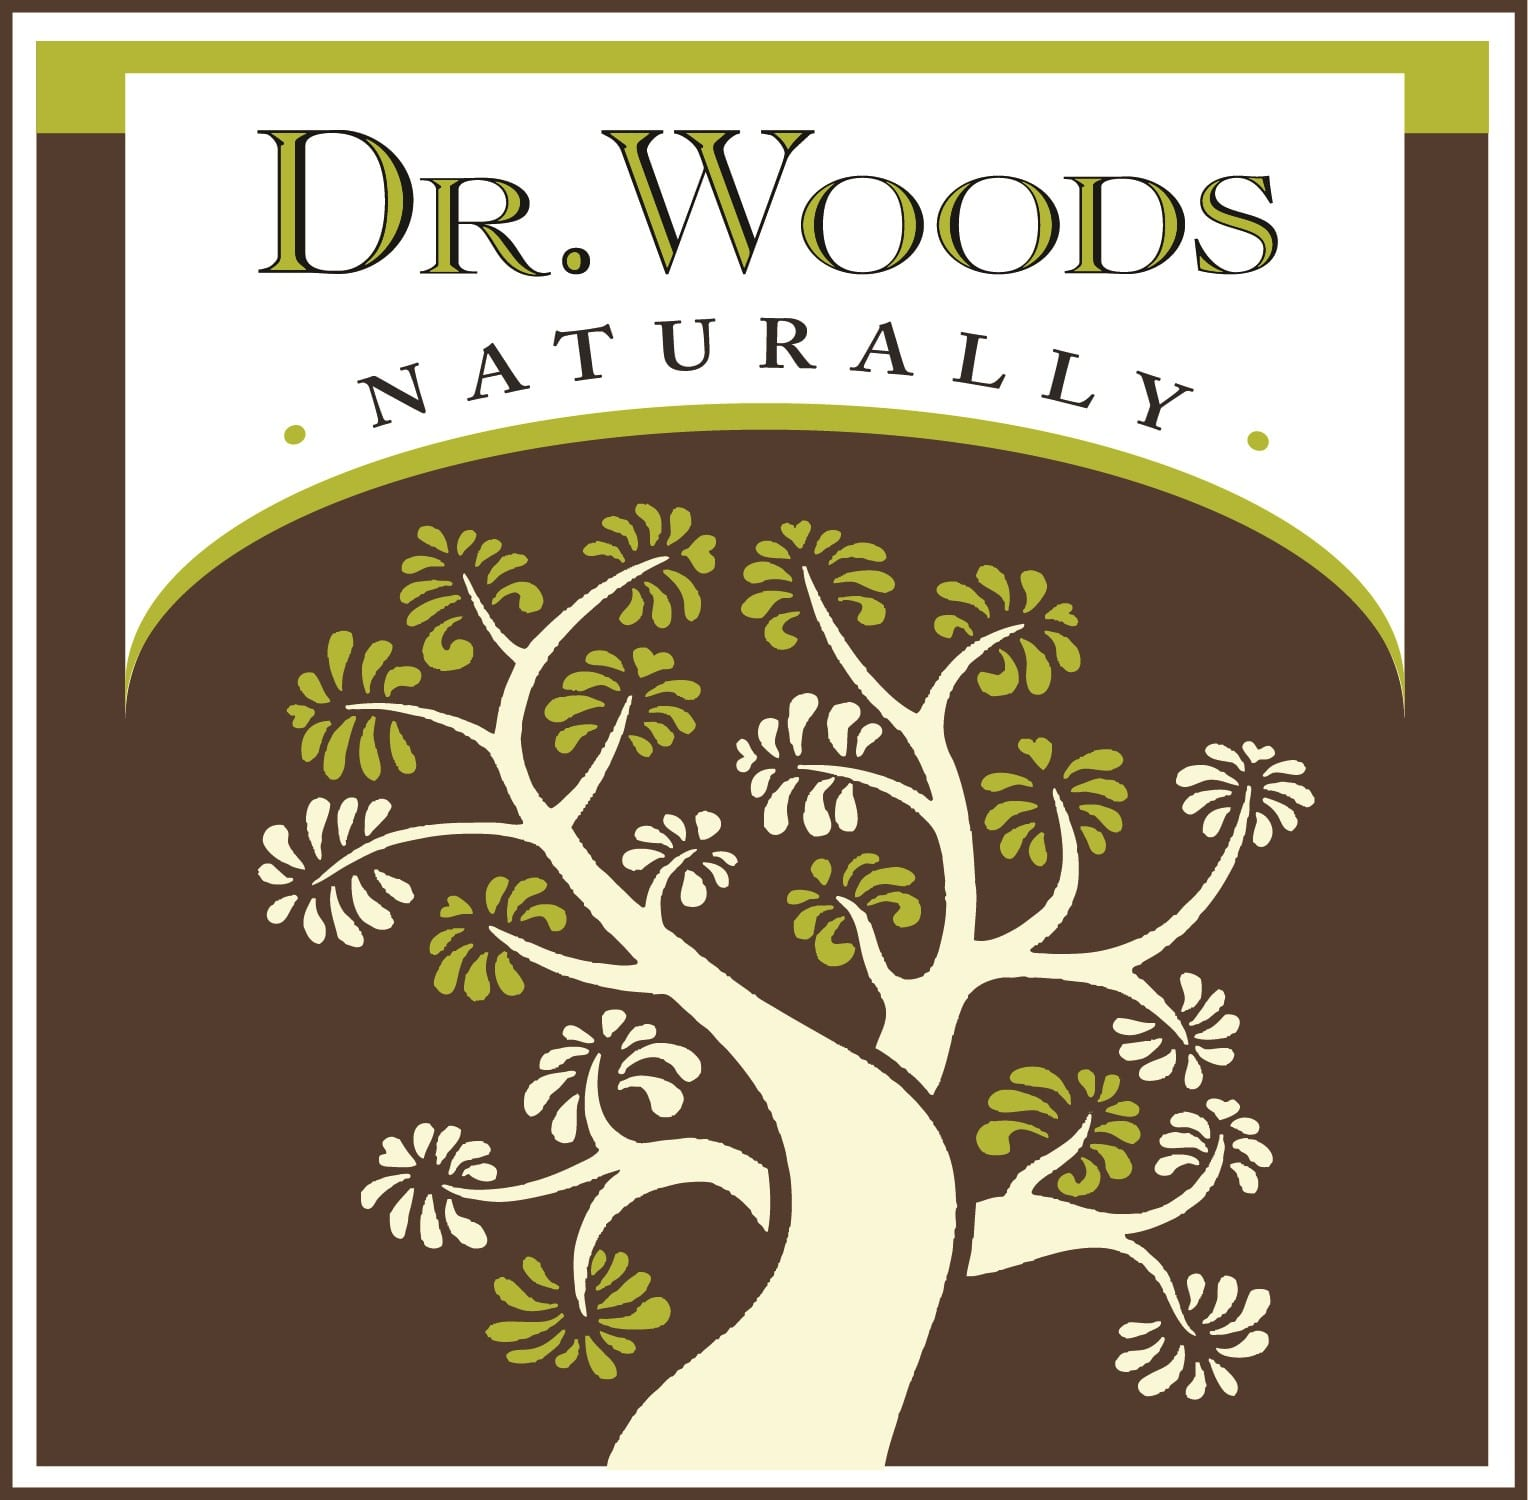 "Our ""All Things Good"" slogan at Dr. Woods defines not only every ingredient that goes into our Castile and Black liquid and bar soaps- but also where we source our products and how they are made.  If it's not good enough for our family, it's not good enough for yours<br><br><strong>https://www.drwoods.com/</strong>"